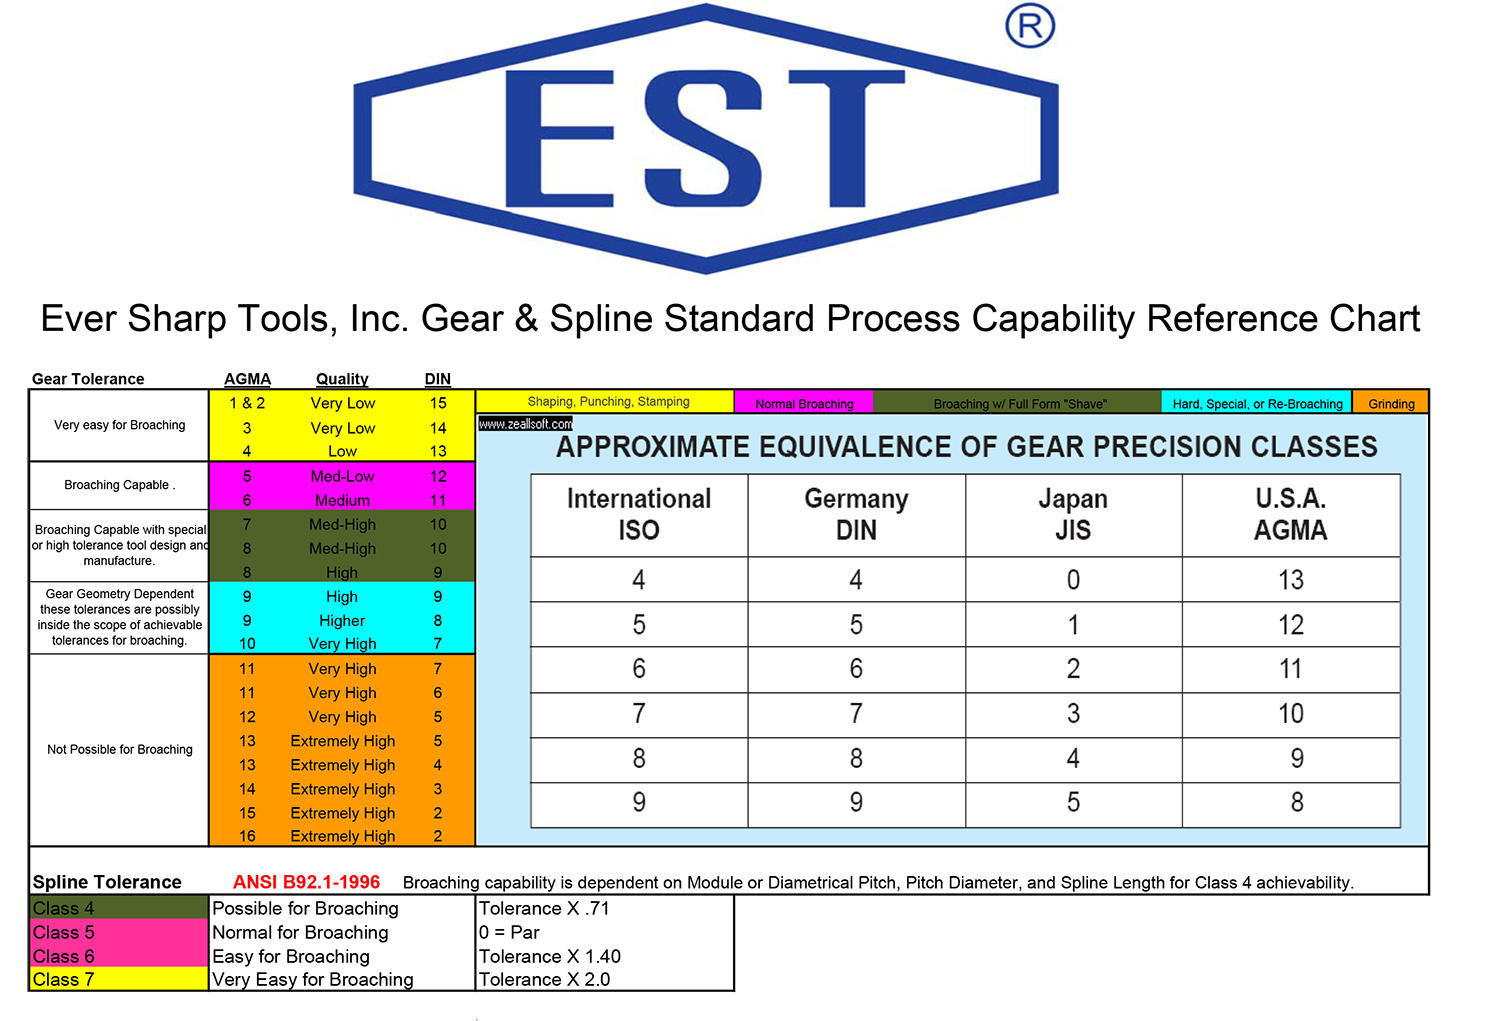 Gear Spline Standard Process Capability Reference.xls